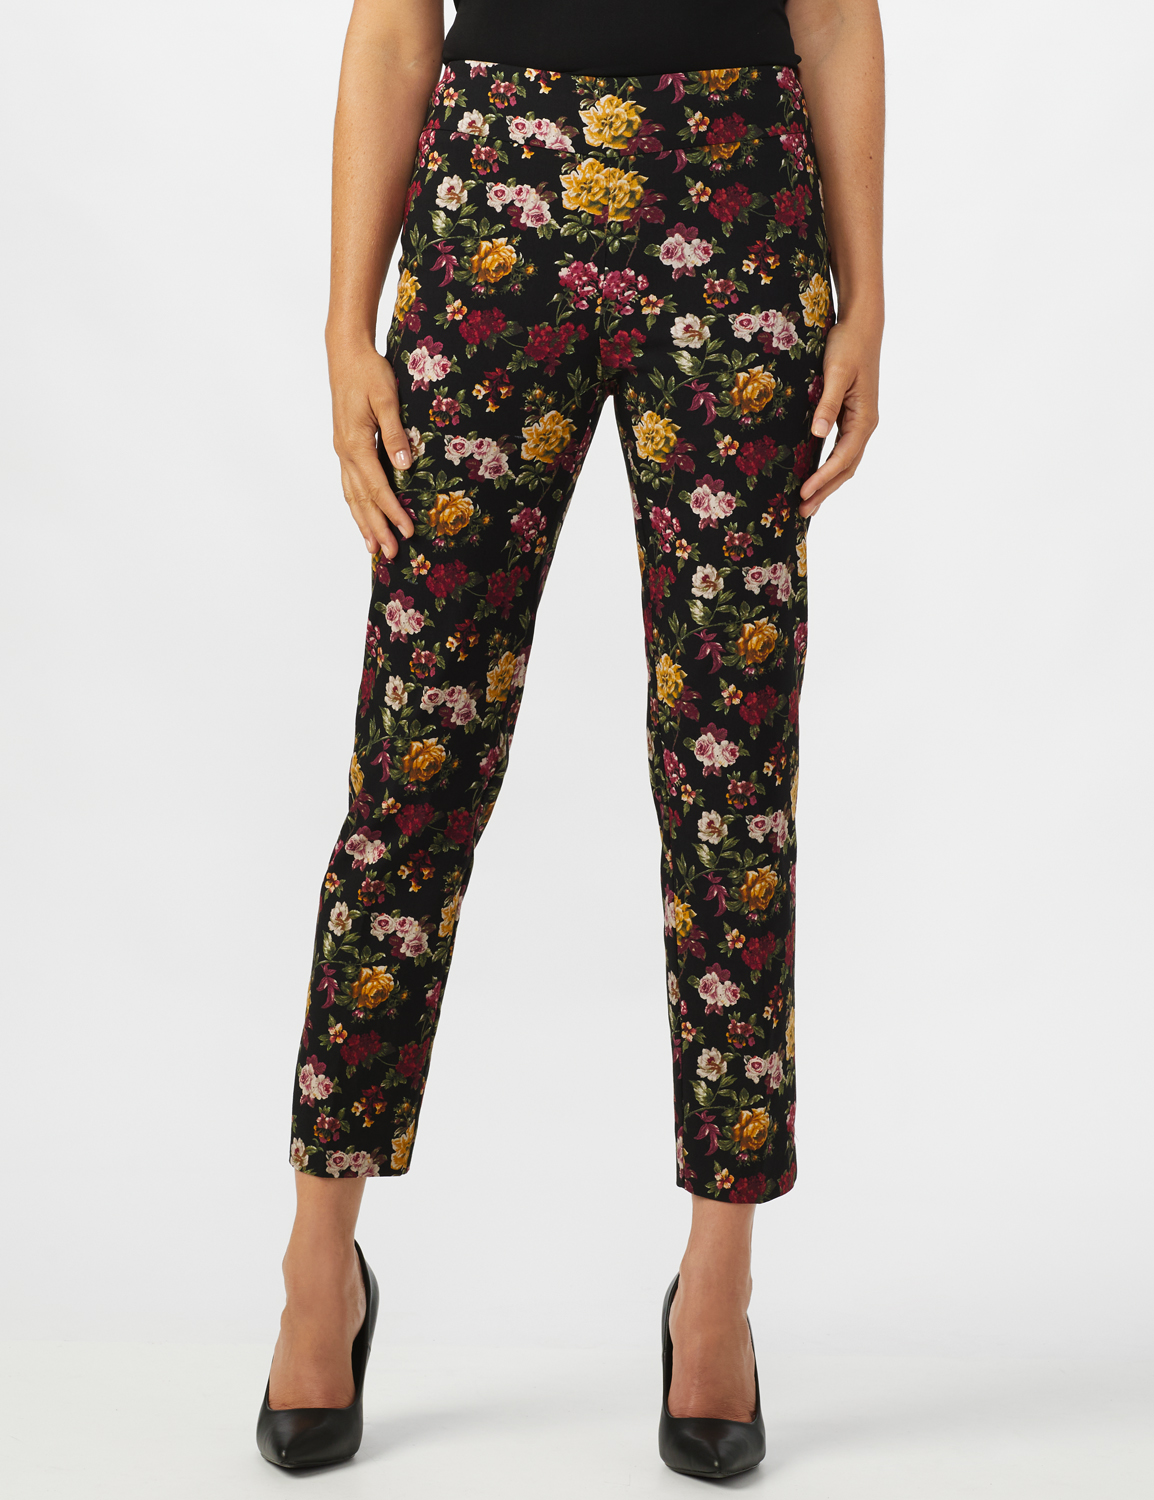 Pull On Floral print Ankle Pants -Black/Wine - Front